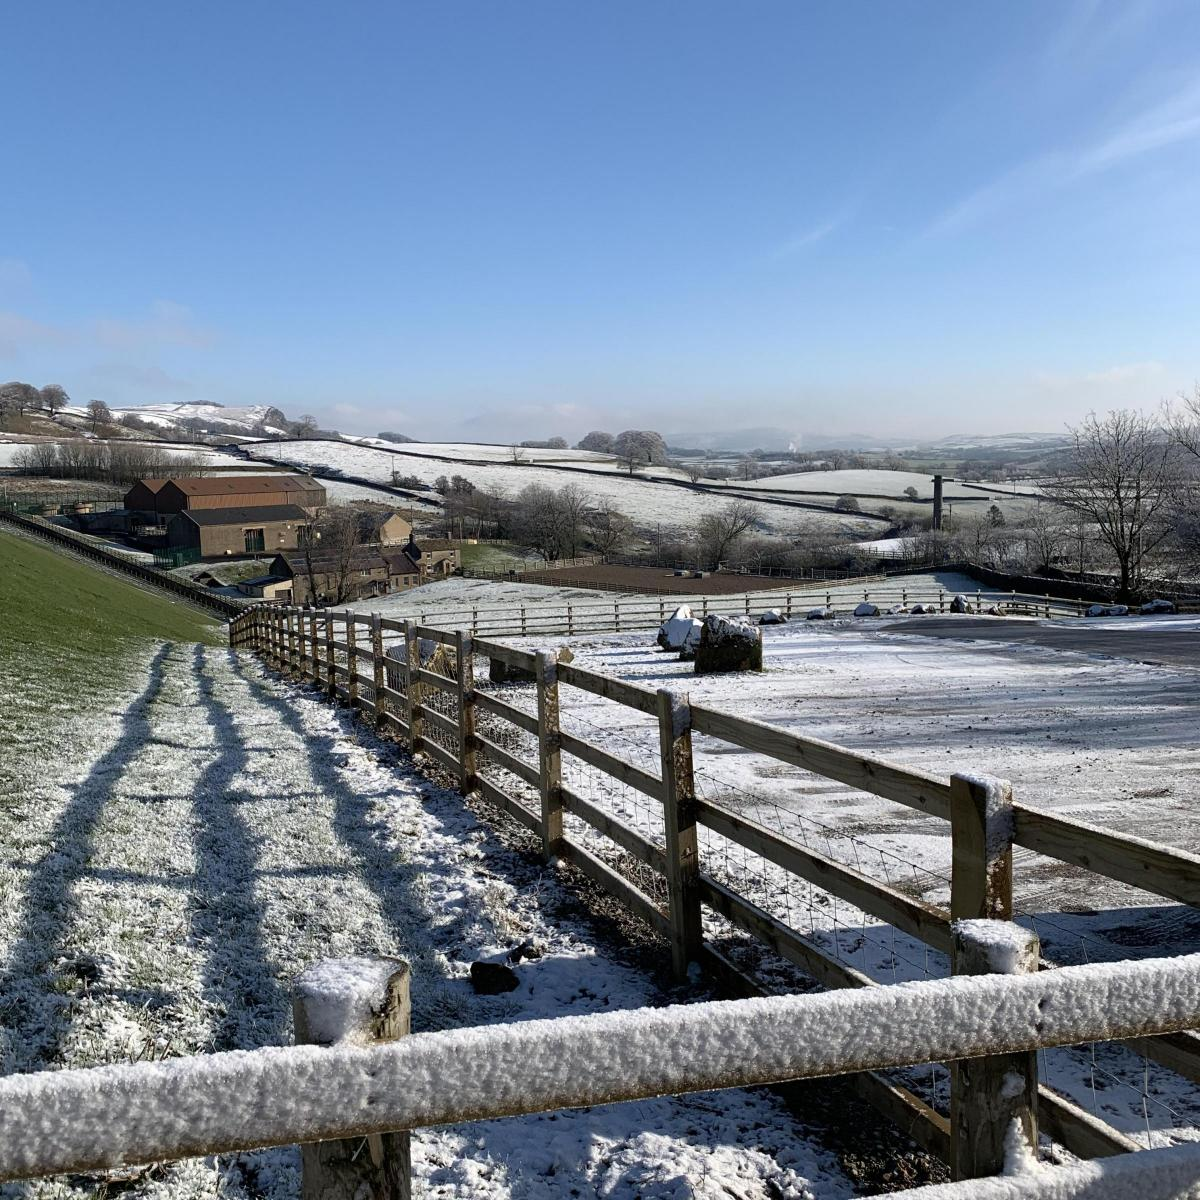 snow gallery more of your great recent photos from around craven and the dales